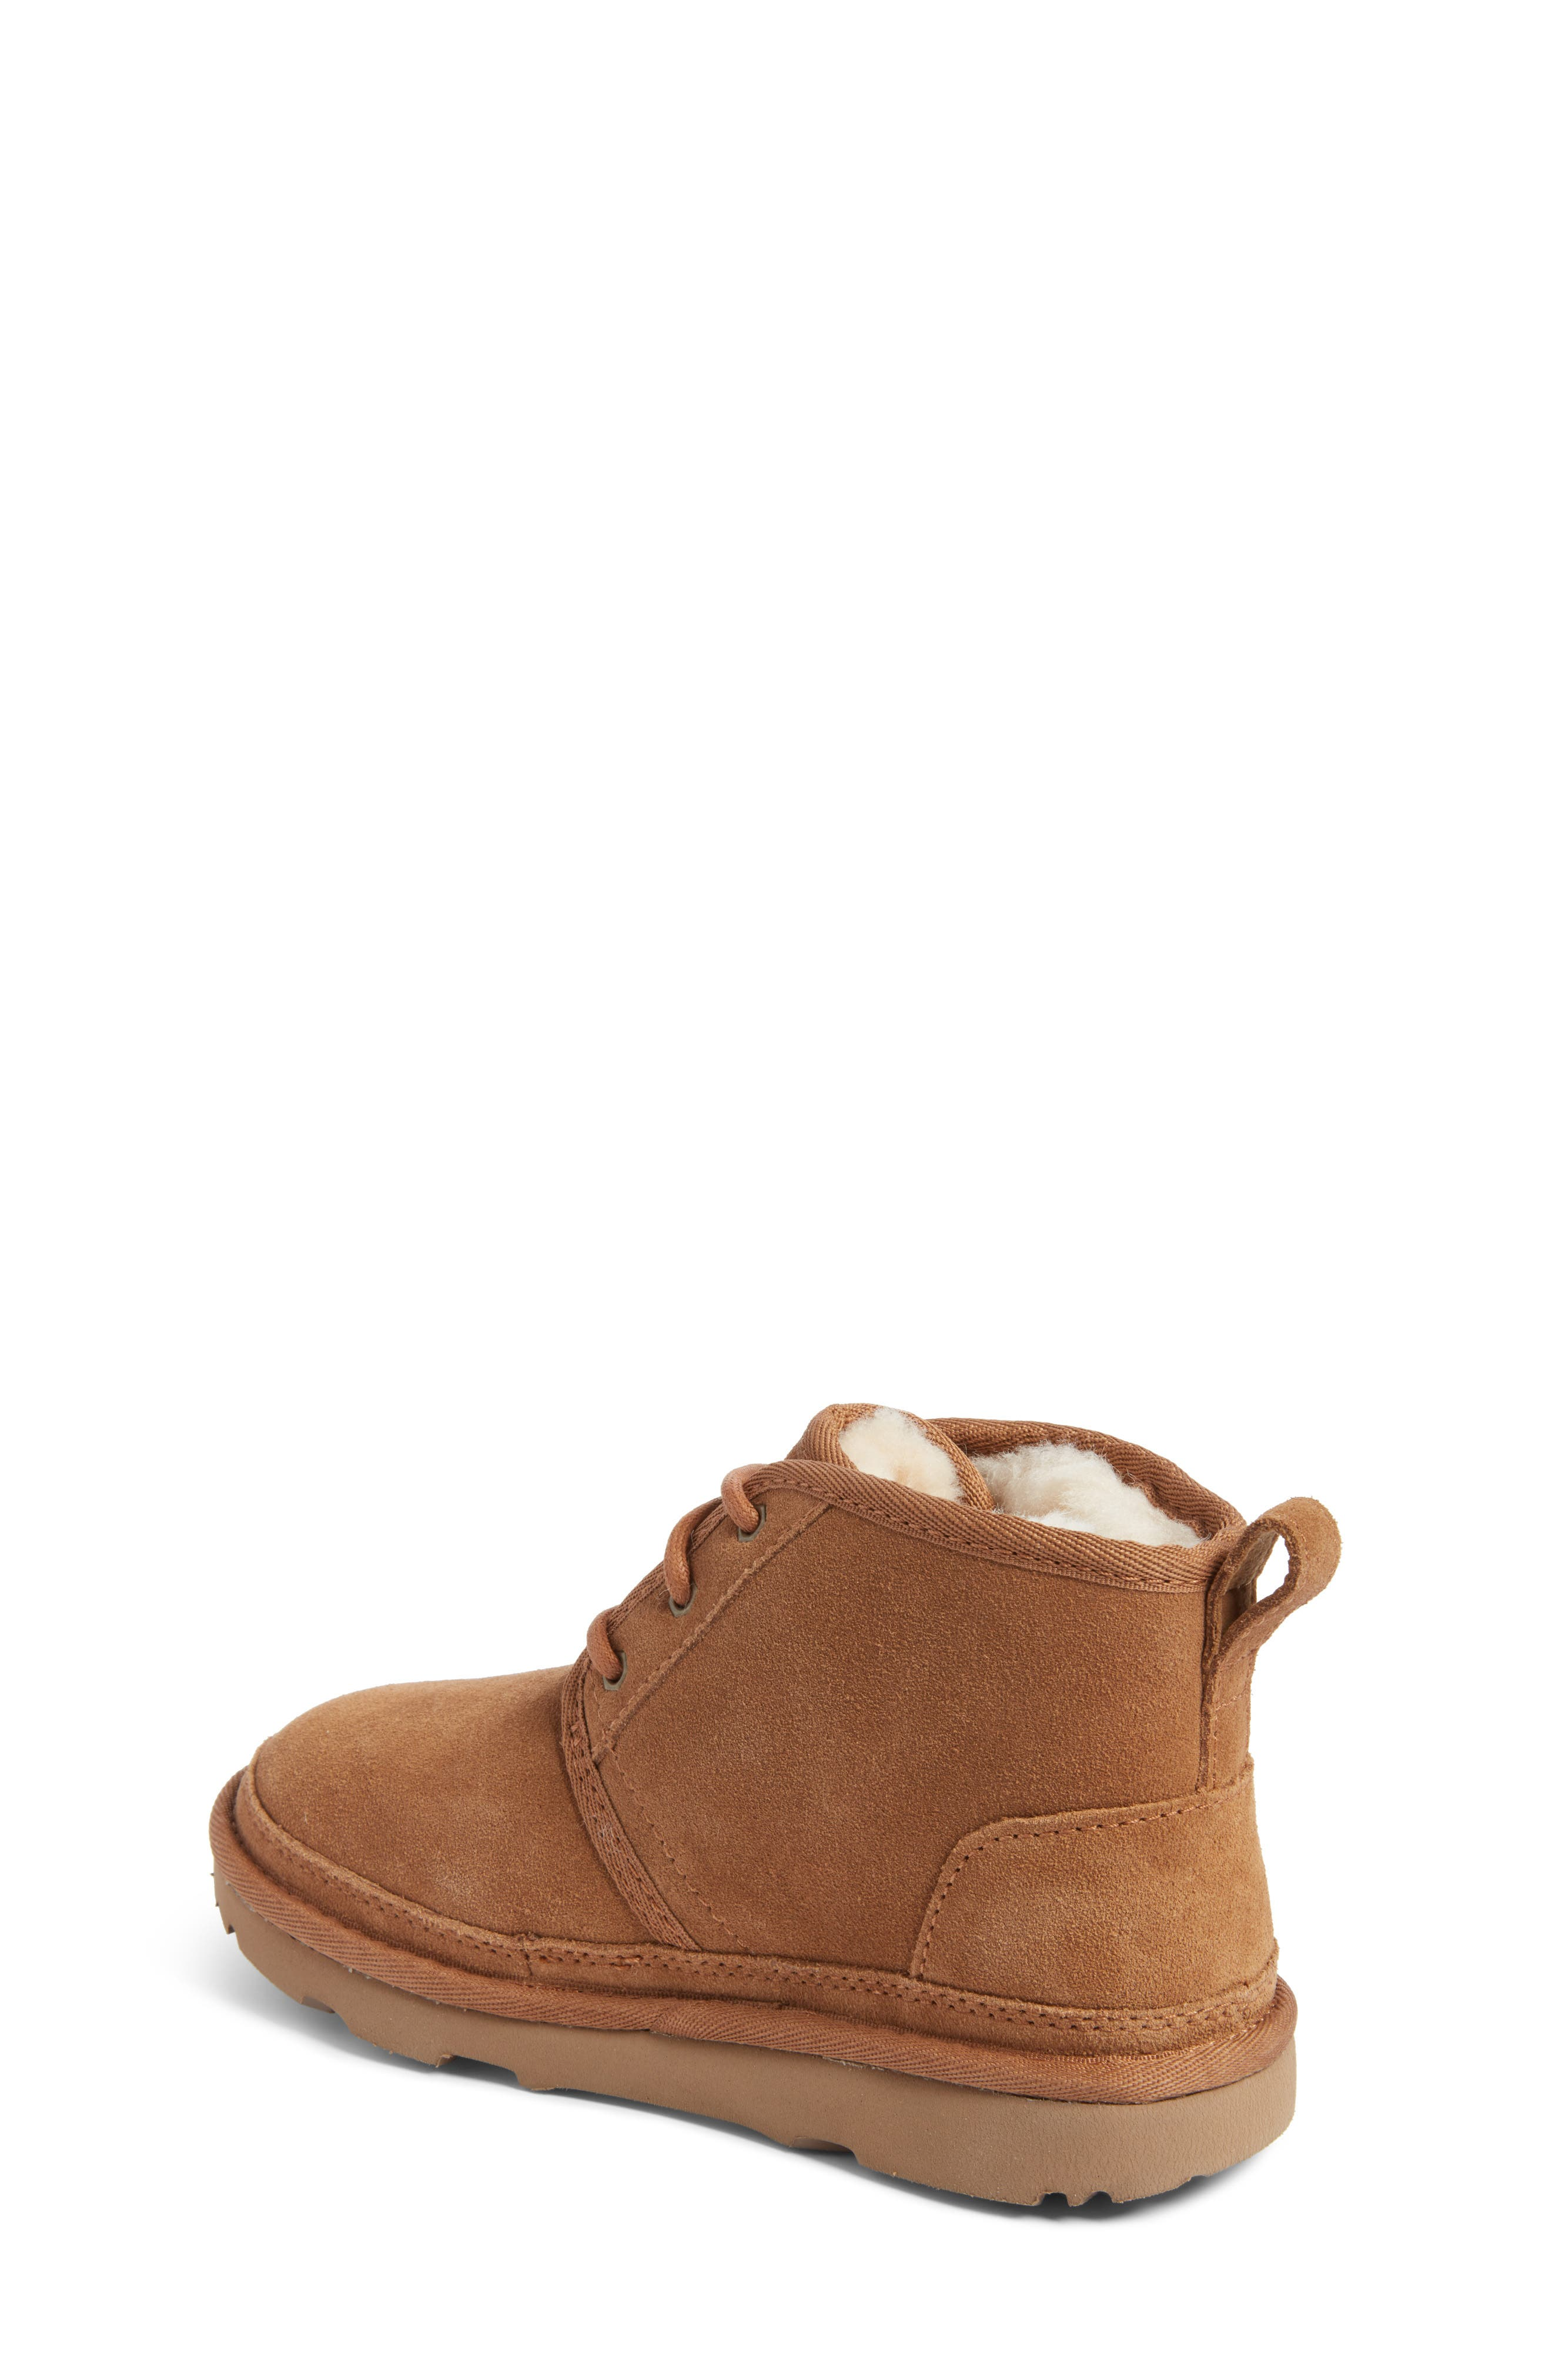 UGG<SUP>®</SUP>, Neumel II Water Resistant Chukka Boot, Alternate thumbnail 2, color, CHESTNUT BROWN